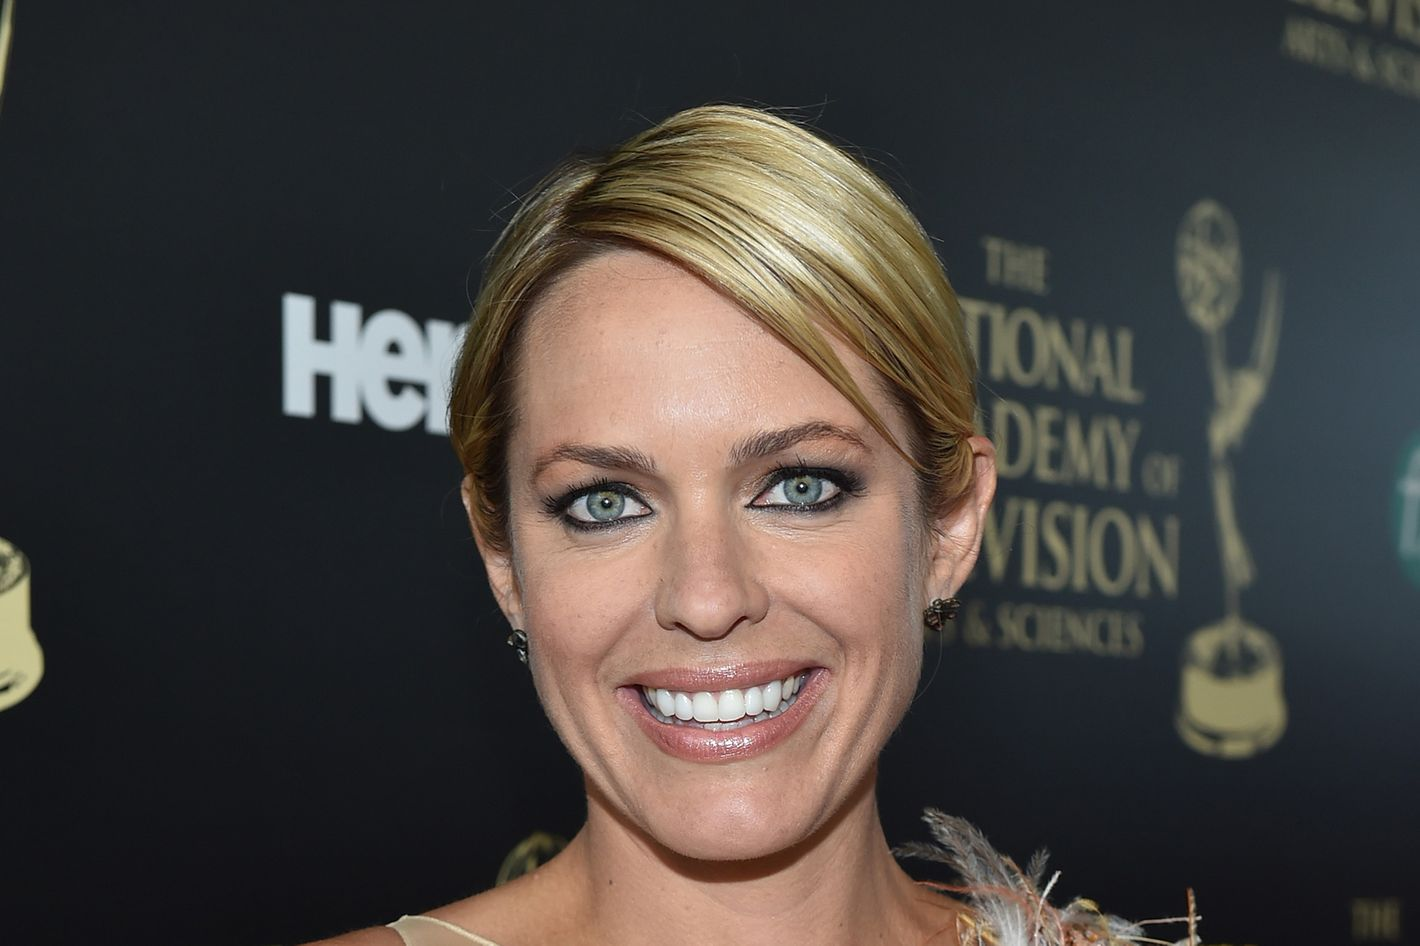 arianne zucker photosarianne zucker instagram, arianne zucker jewelry, arianne zucker photos, arianne zucker donald trump, arianne zucker, arianne zucker daughter, arianne zucker husband, arianne zucker dating, arianne zucker net worth, arianne zucker and kyle lowder wedding, arianne zucker and shawn christensen, arianne zucker leaving days, arianne zucker twitter, arianne zucker hairstyles, arianne zucker pregnant, arianne zucker feet, arianne zucker divorce, arianne zucker and greg vaughan, arianne zucker facebook, arianne zucker family